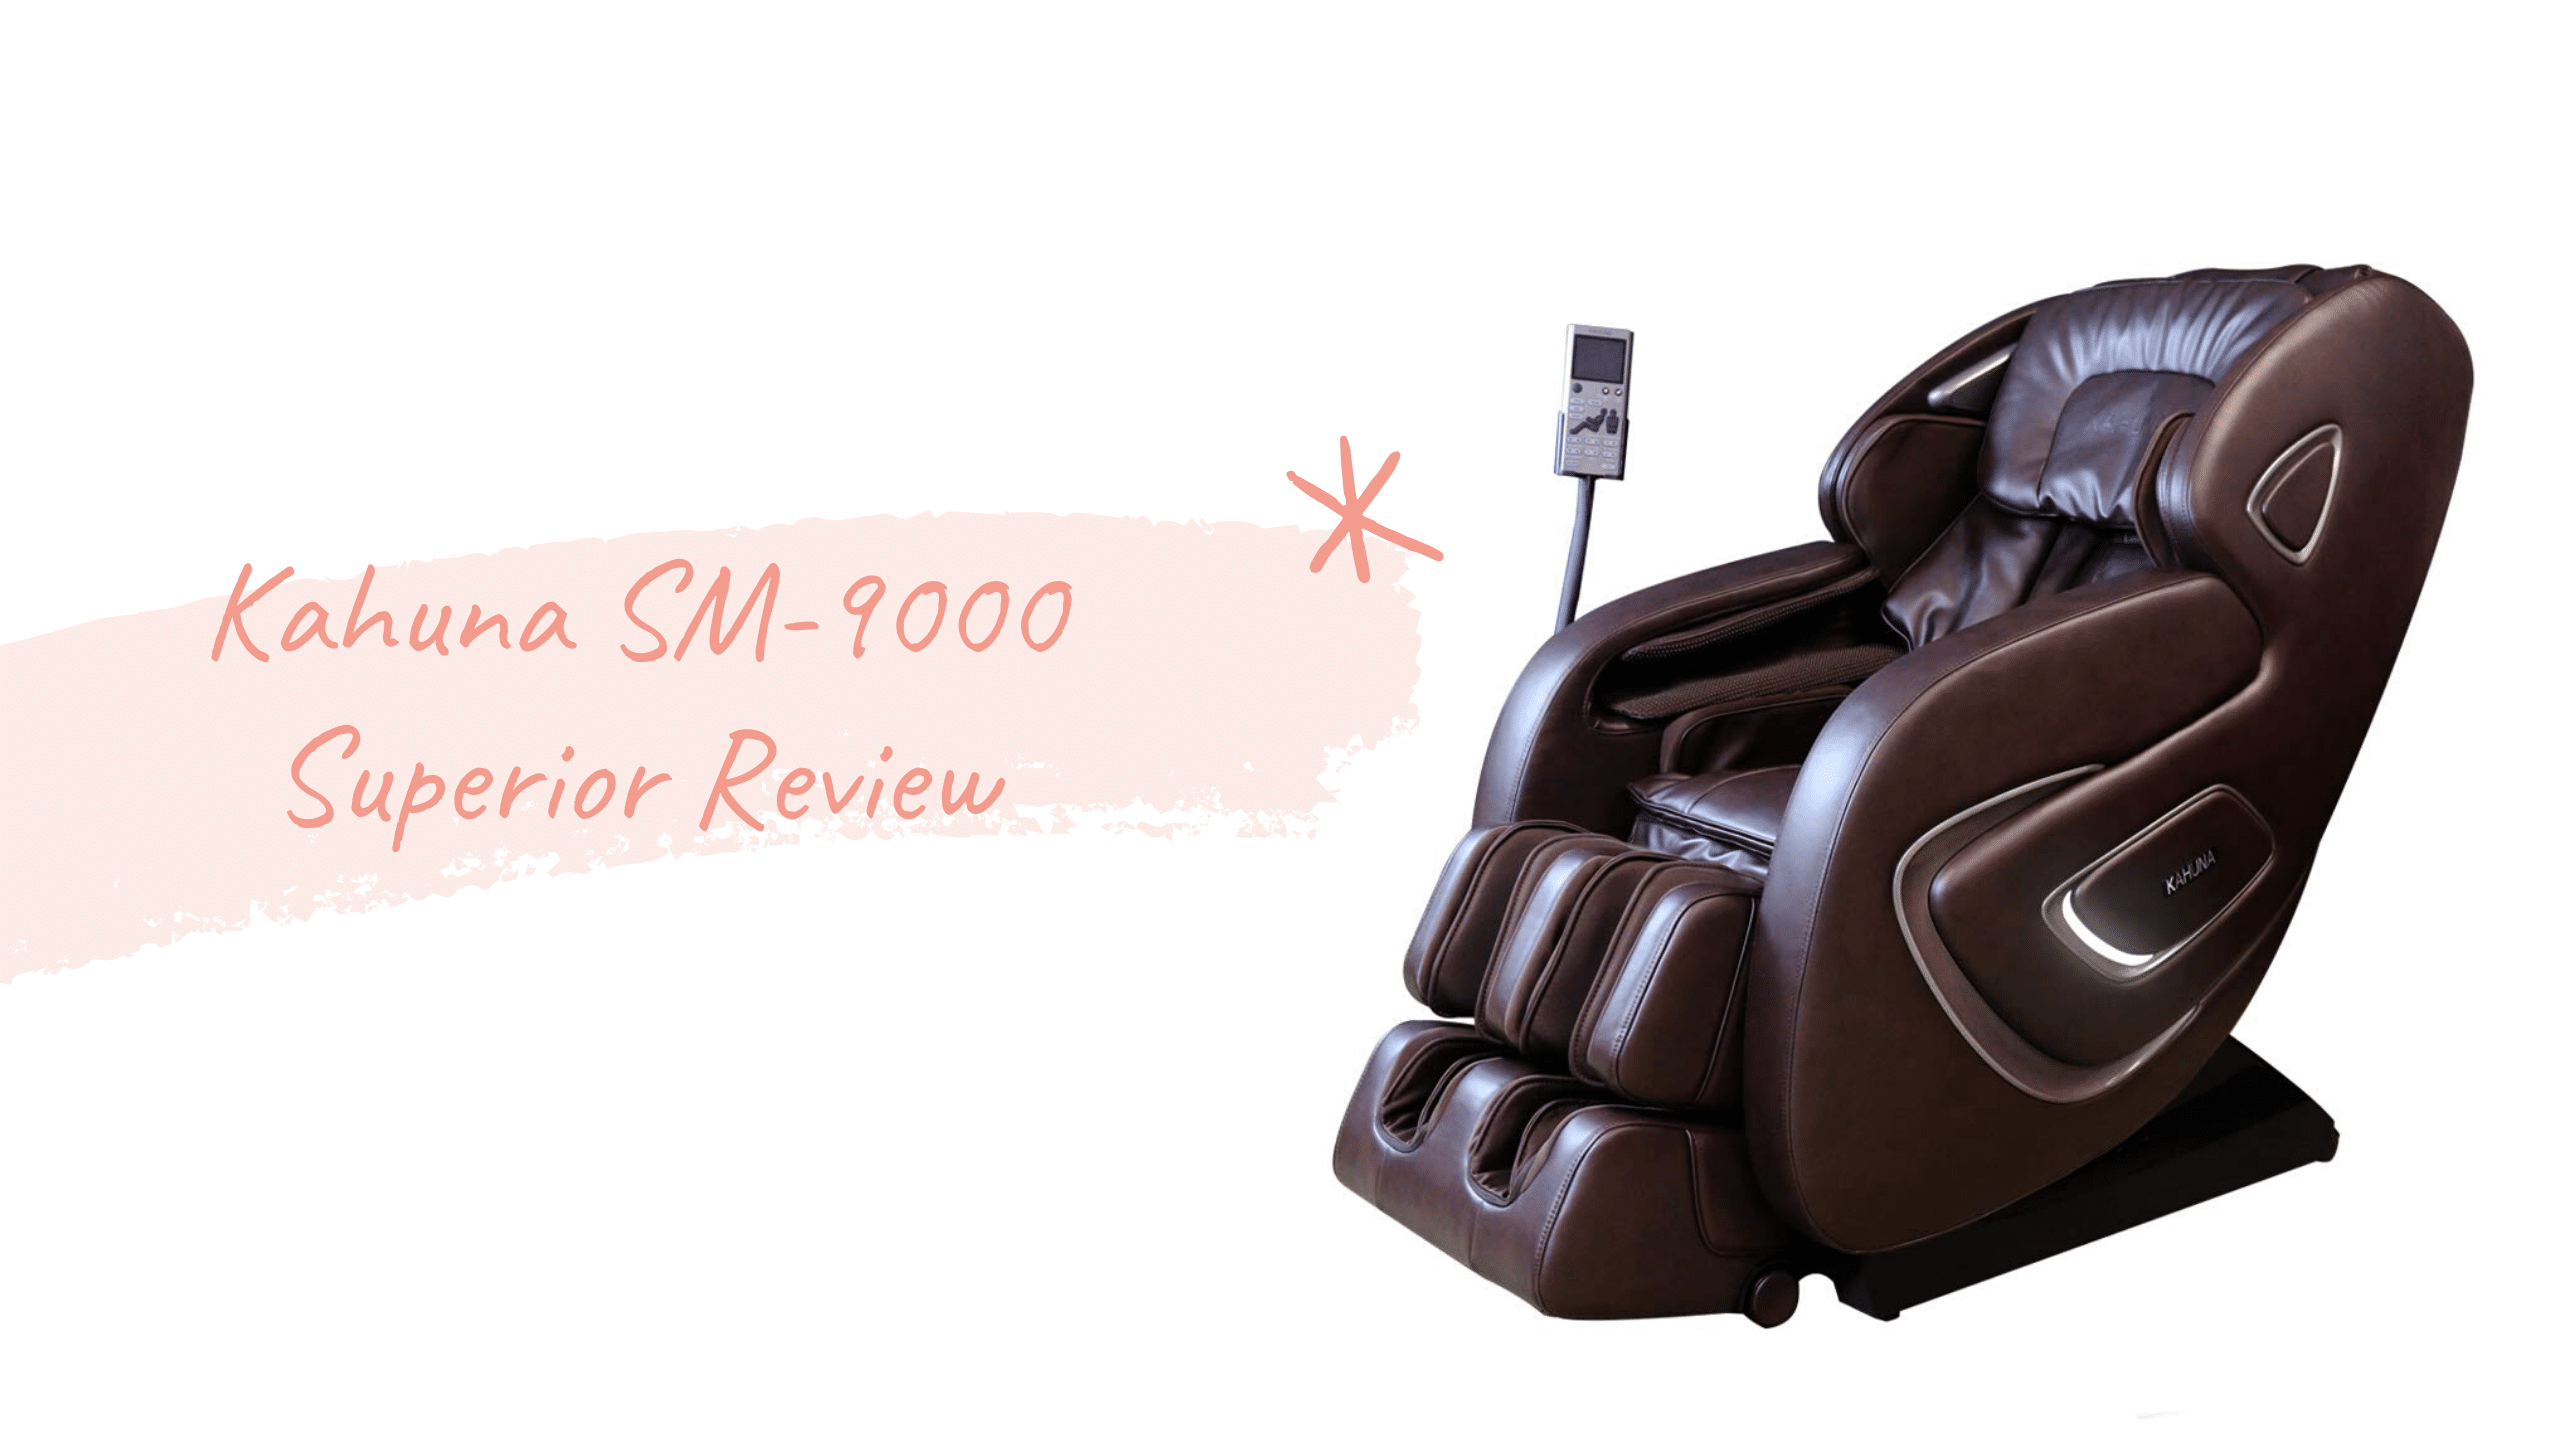 Kahuna SM-9000 Superior Review